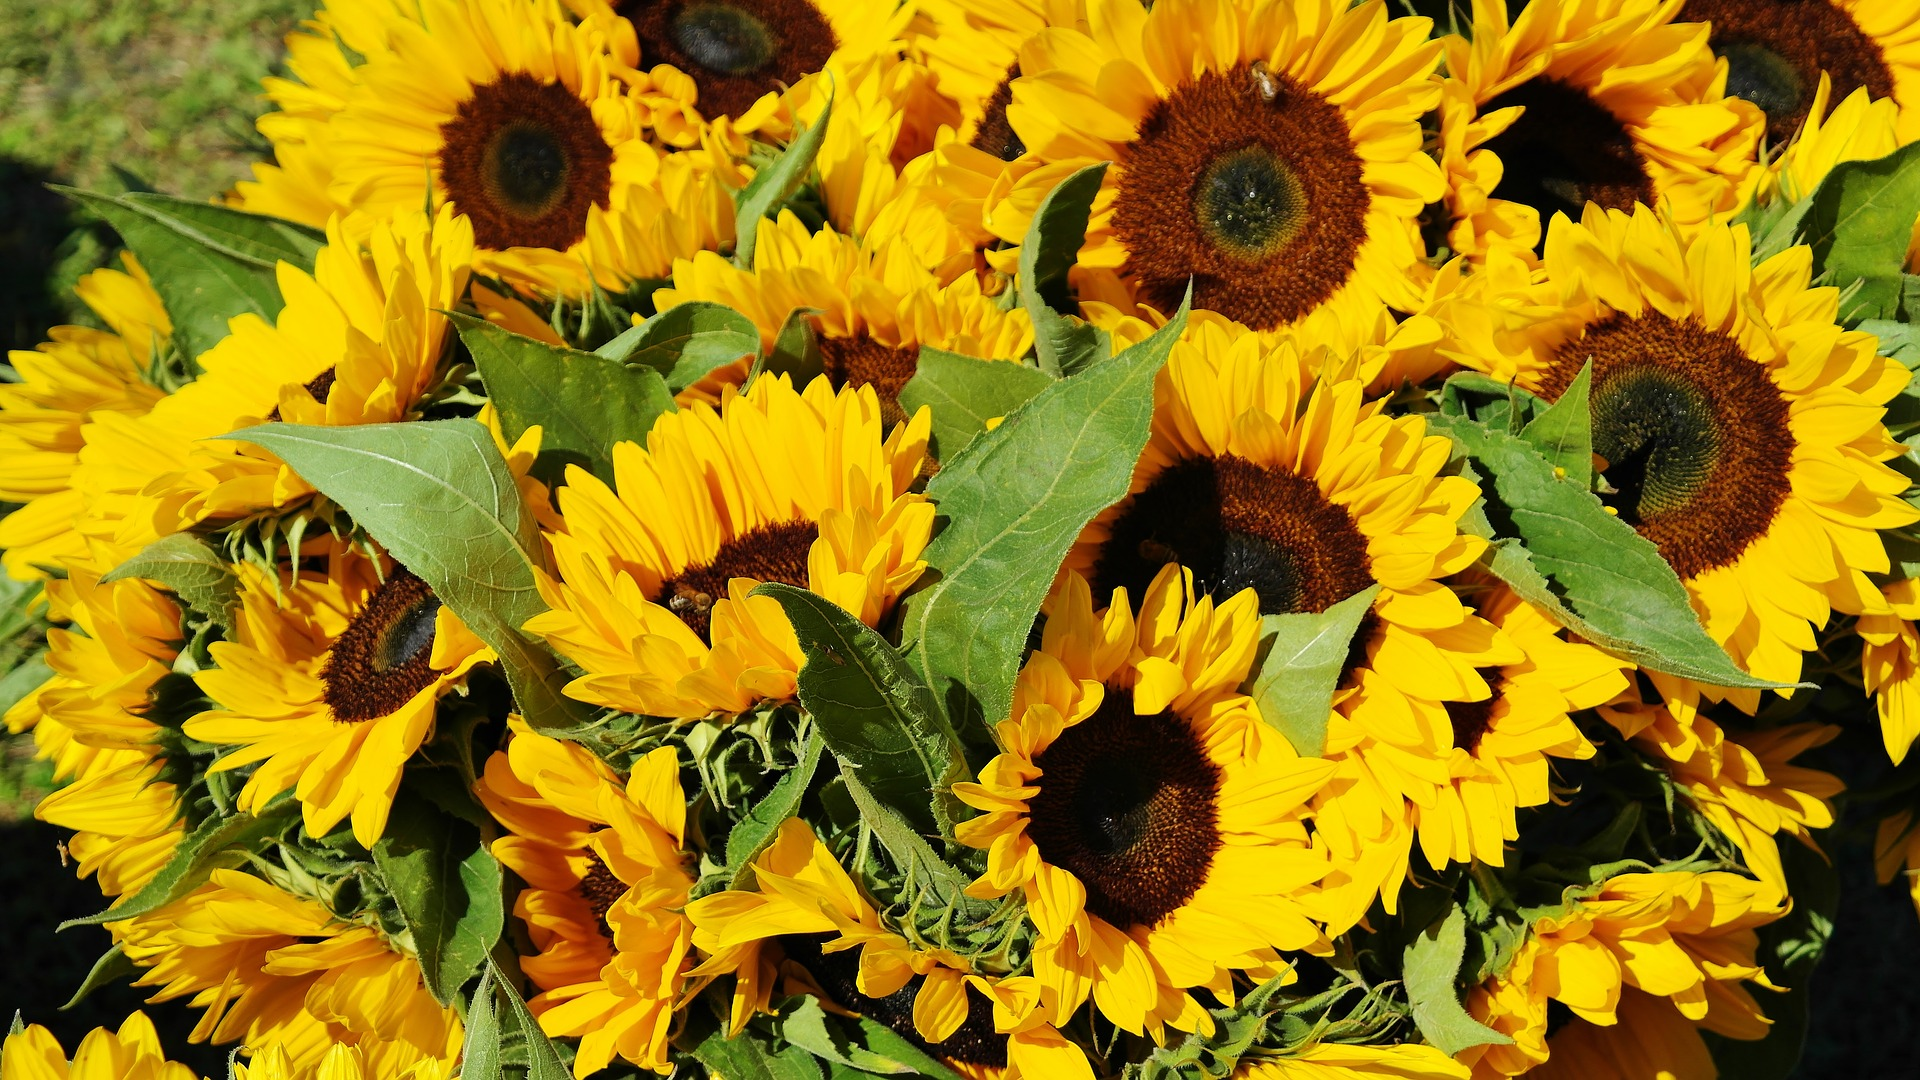 sunflower-1622785_1920